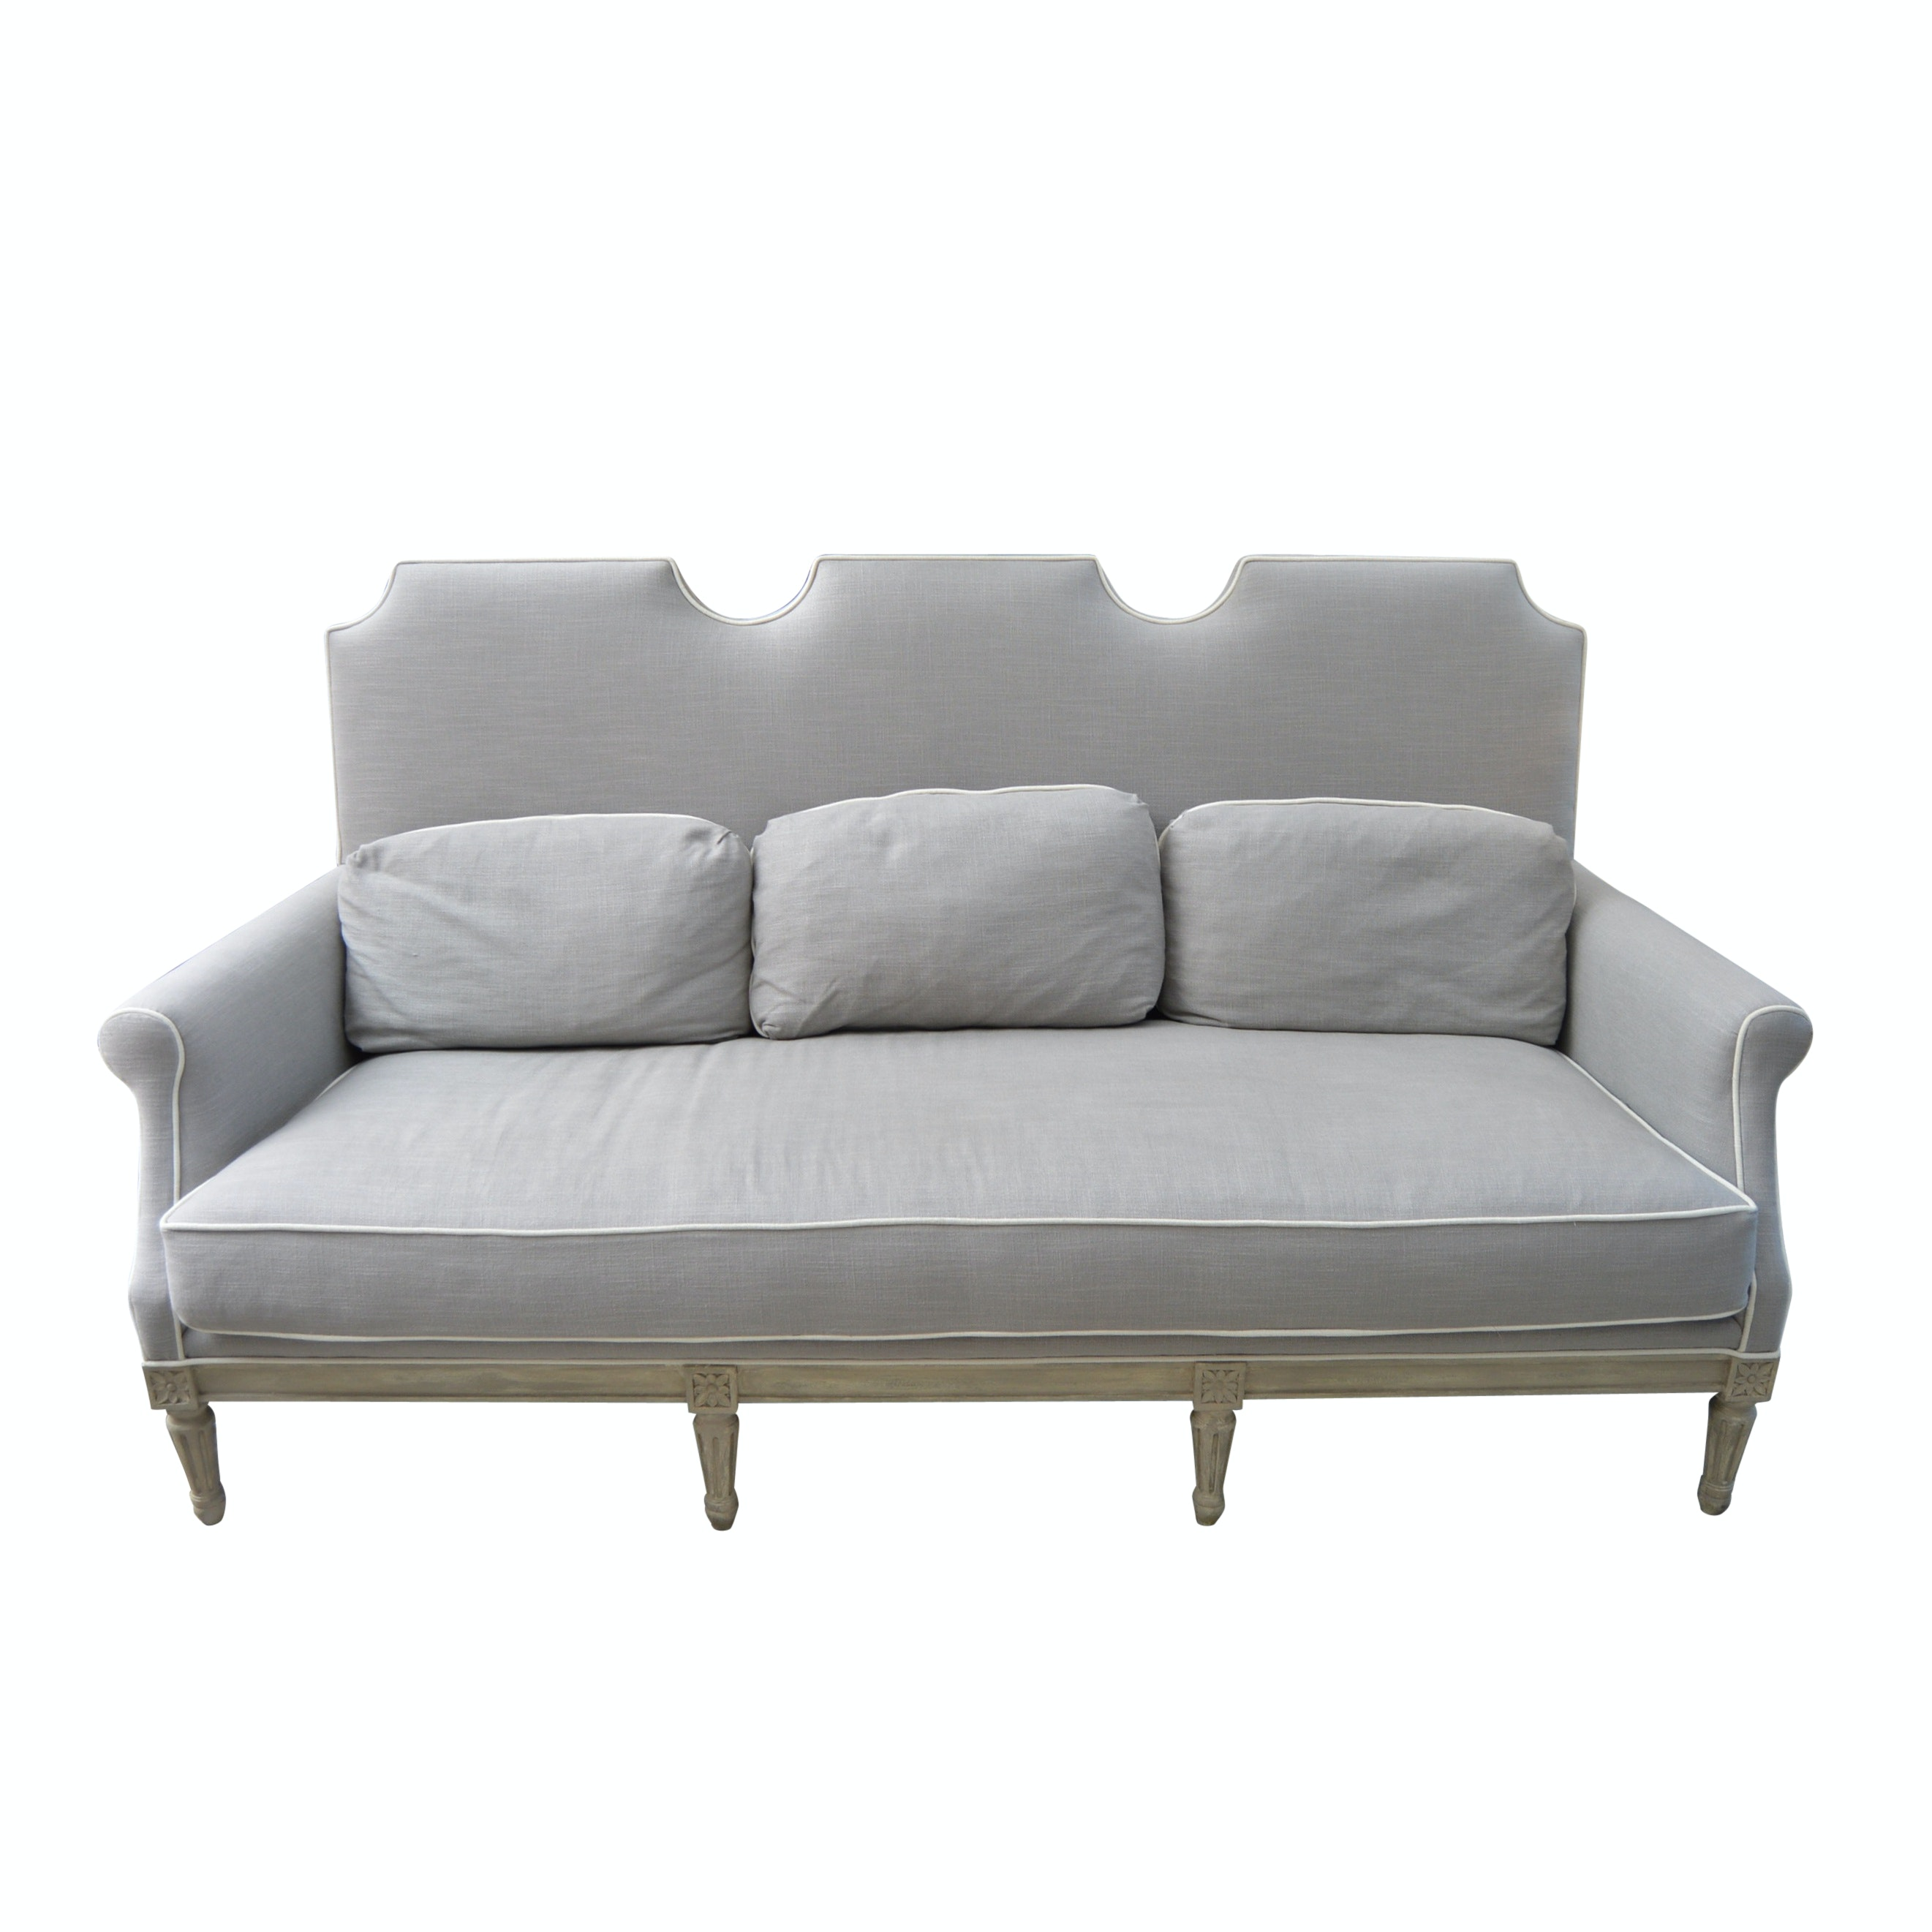 Louis XVI Style Upholstered Sofa from John-Richard